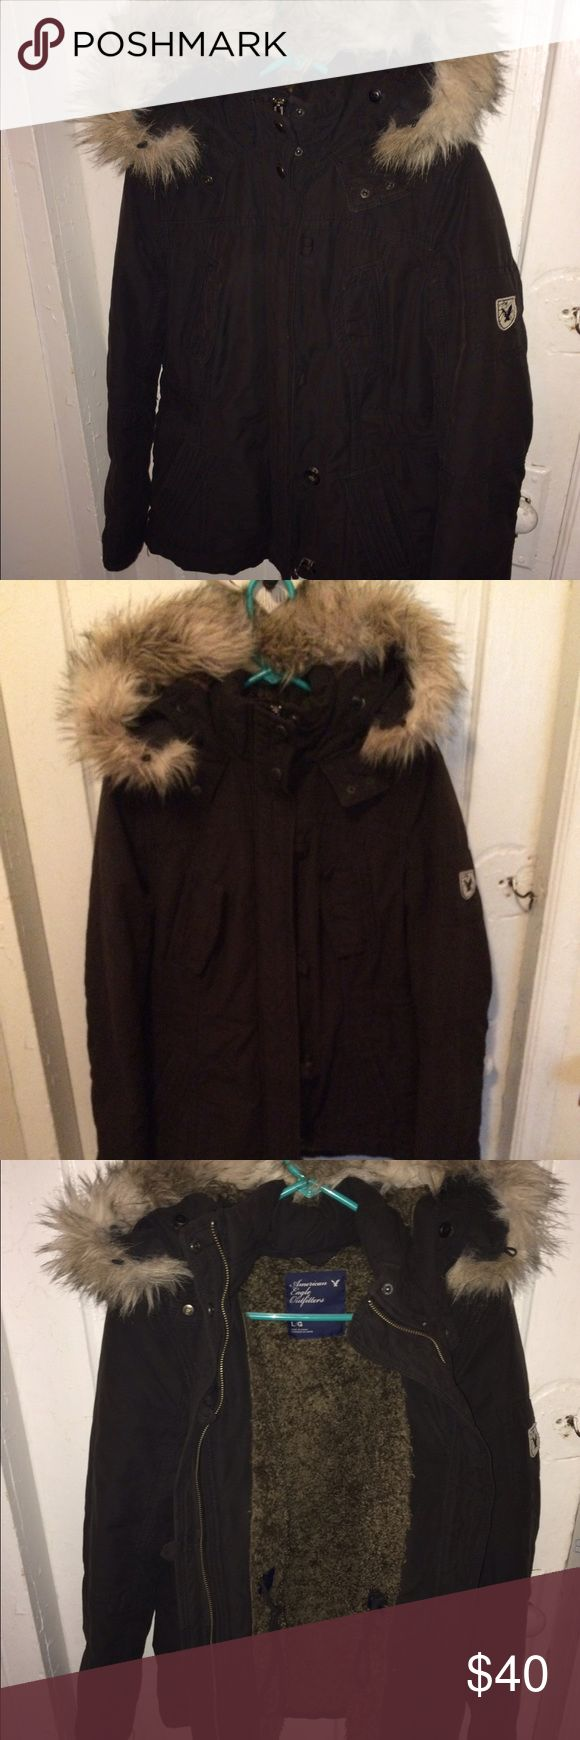 Women's black American eagle parka Really warm coat. Black parka style with fur. This is a true women's large! Has a string inside to tighten the waist American Eagle Outfitters Jackets & Coats